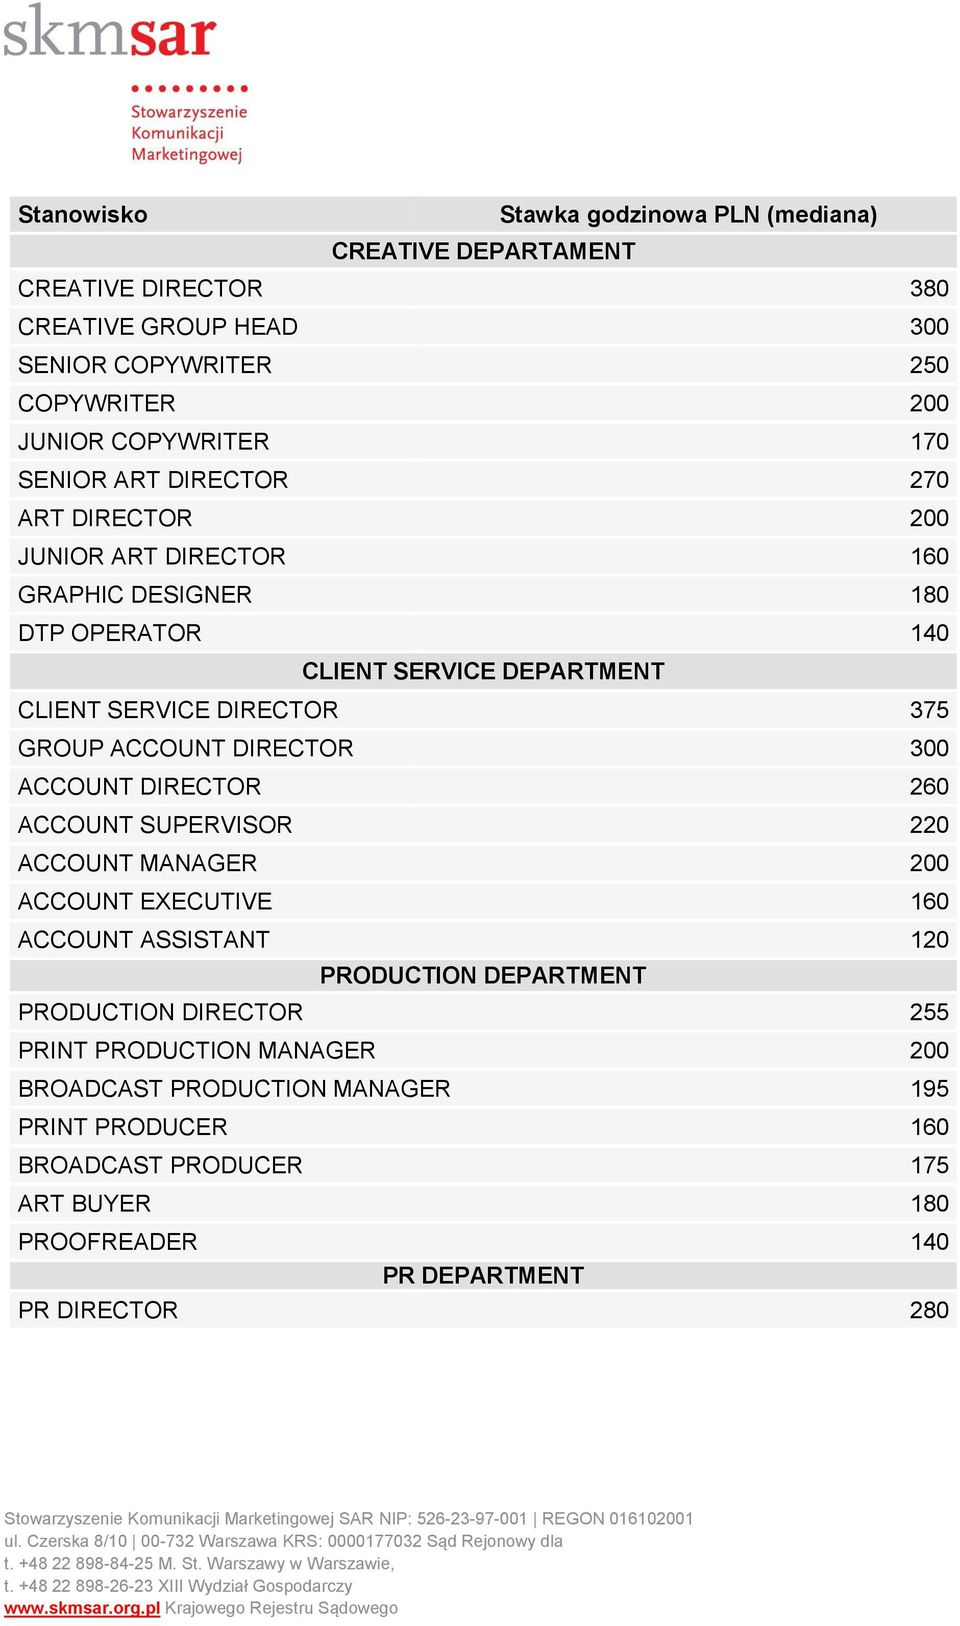 ACCOUNT DIRECTOR 300 ACCOUNT DIRECTOR 260 ACCOUNT SUPERVISOR 220 ACCOUNT MANAGER 200 ACCOUNT EXECUTIVE 160 ACCOUNT ASSISTANT 120 PRODUCTION DEPARTMENT PRODUCTION